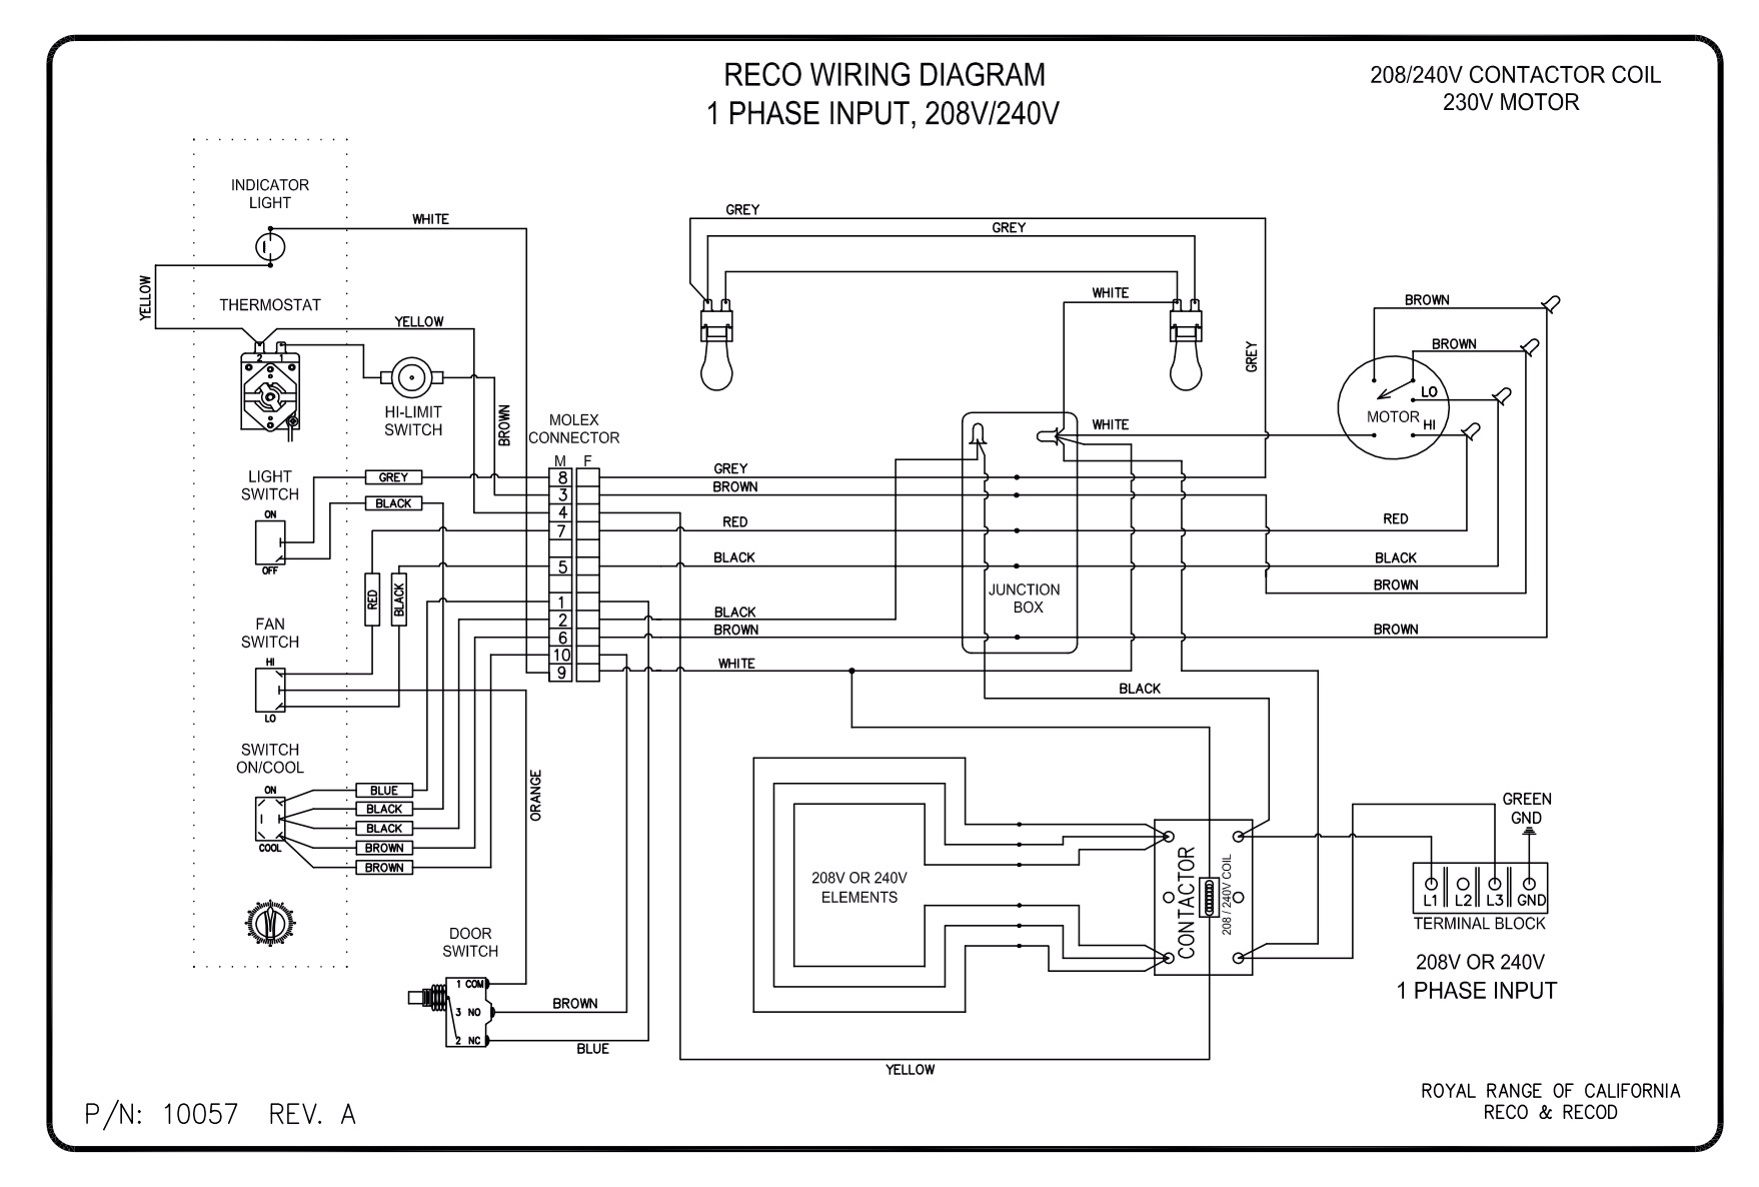 samsung range wiring diagram detailed schematic diagrams rh redrabbit studios com Kenmore Range Wiring Diagram GE Range Electrical Diagram